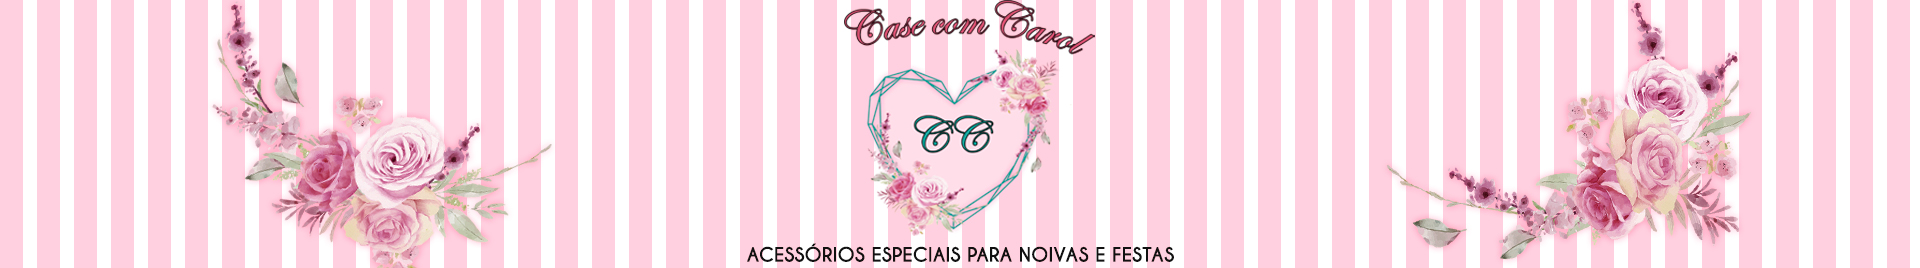 Case com Carol